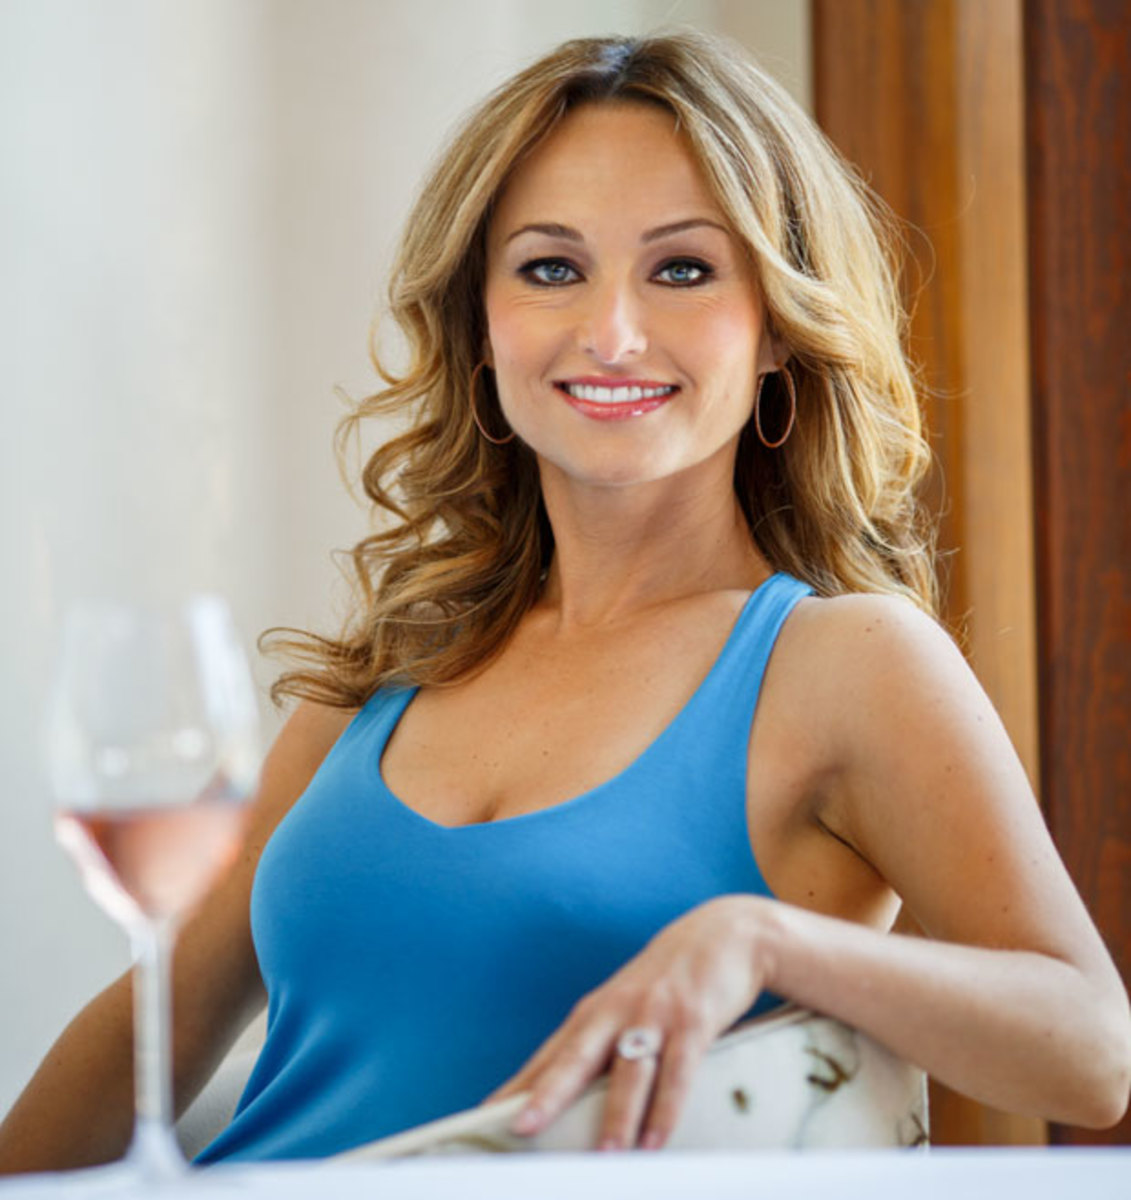 Giada de laurentiis too sexy on food channel